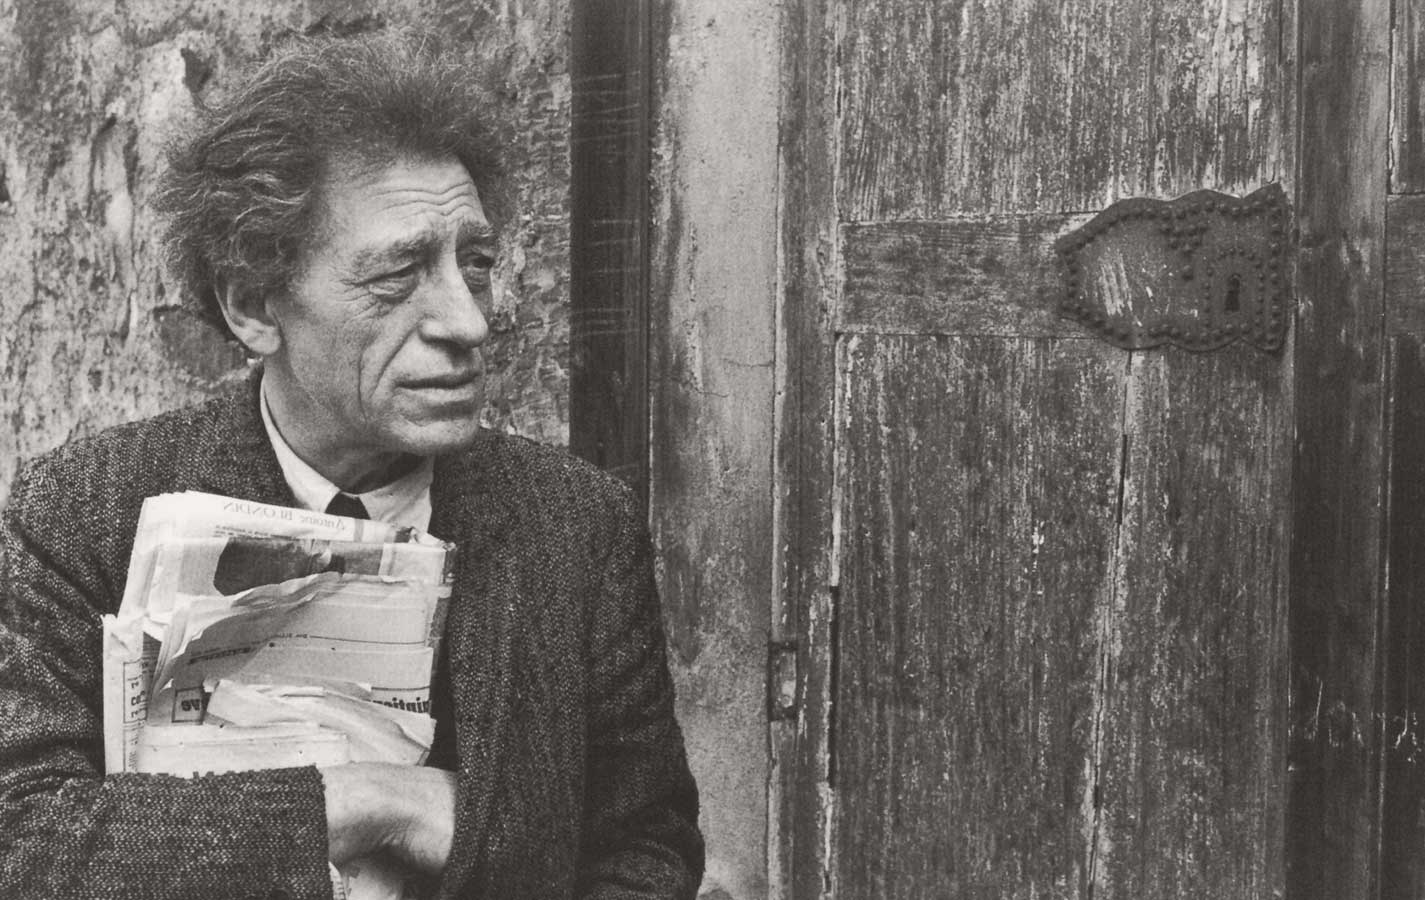 Alberto Giacometti among The Great Masters